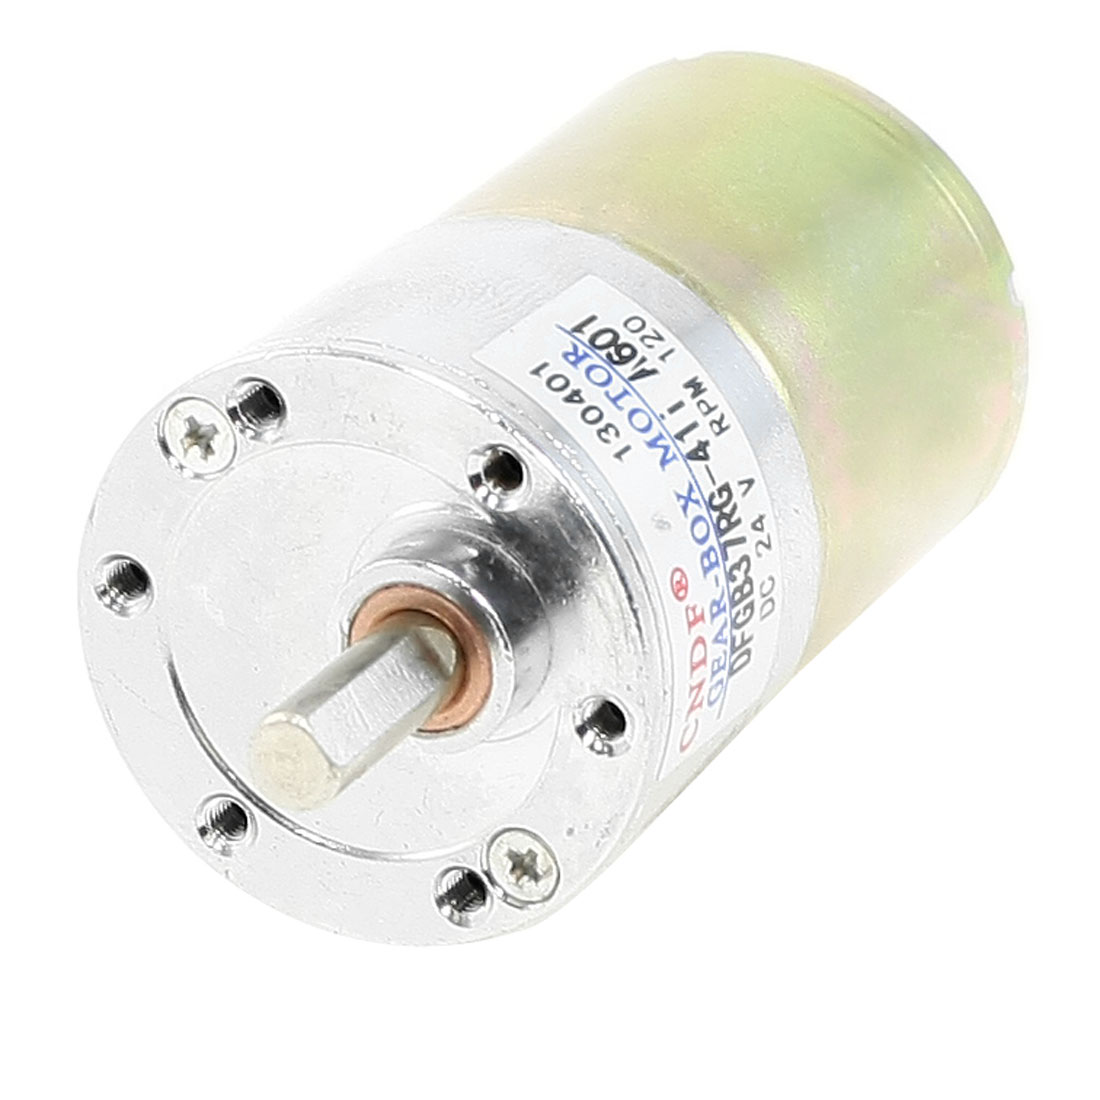 13-14Kg-cm-6mm-Shaft-Permanent-Magnetic-Gear-Box-Motor-120-RPM-DC-24V